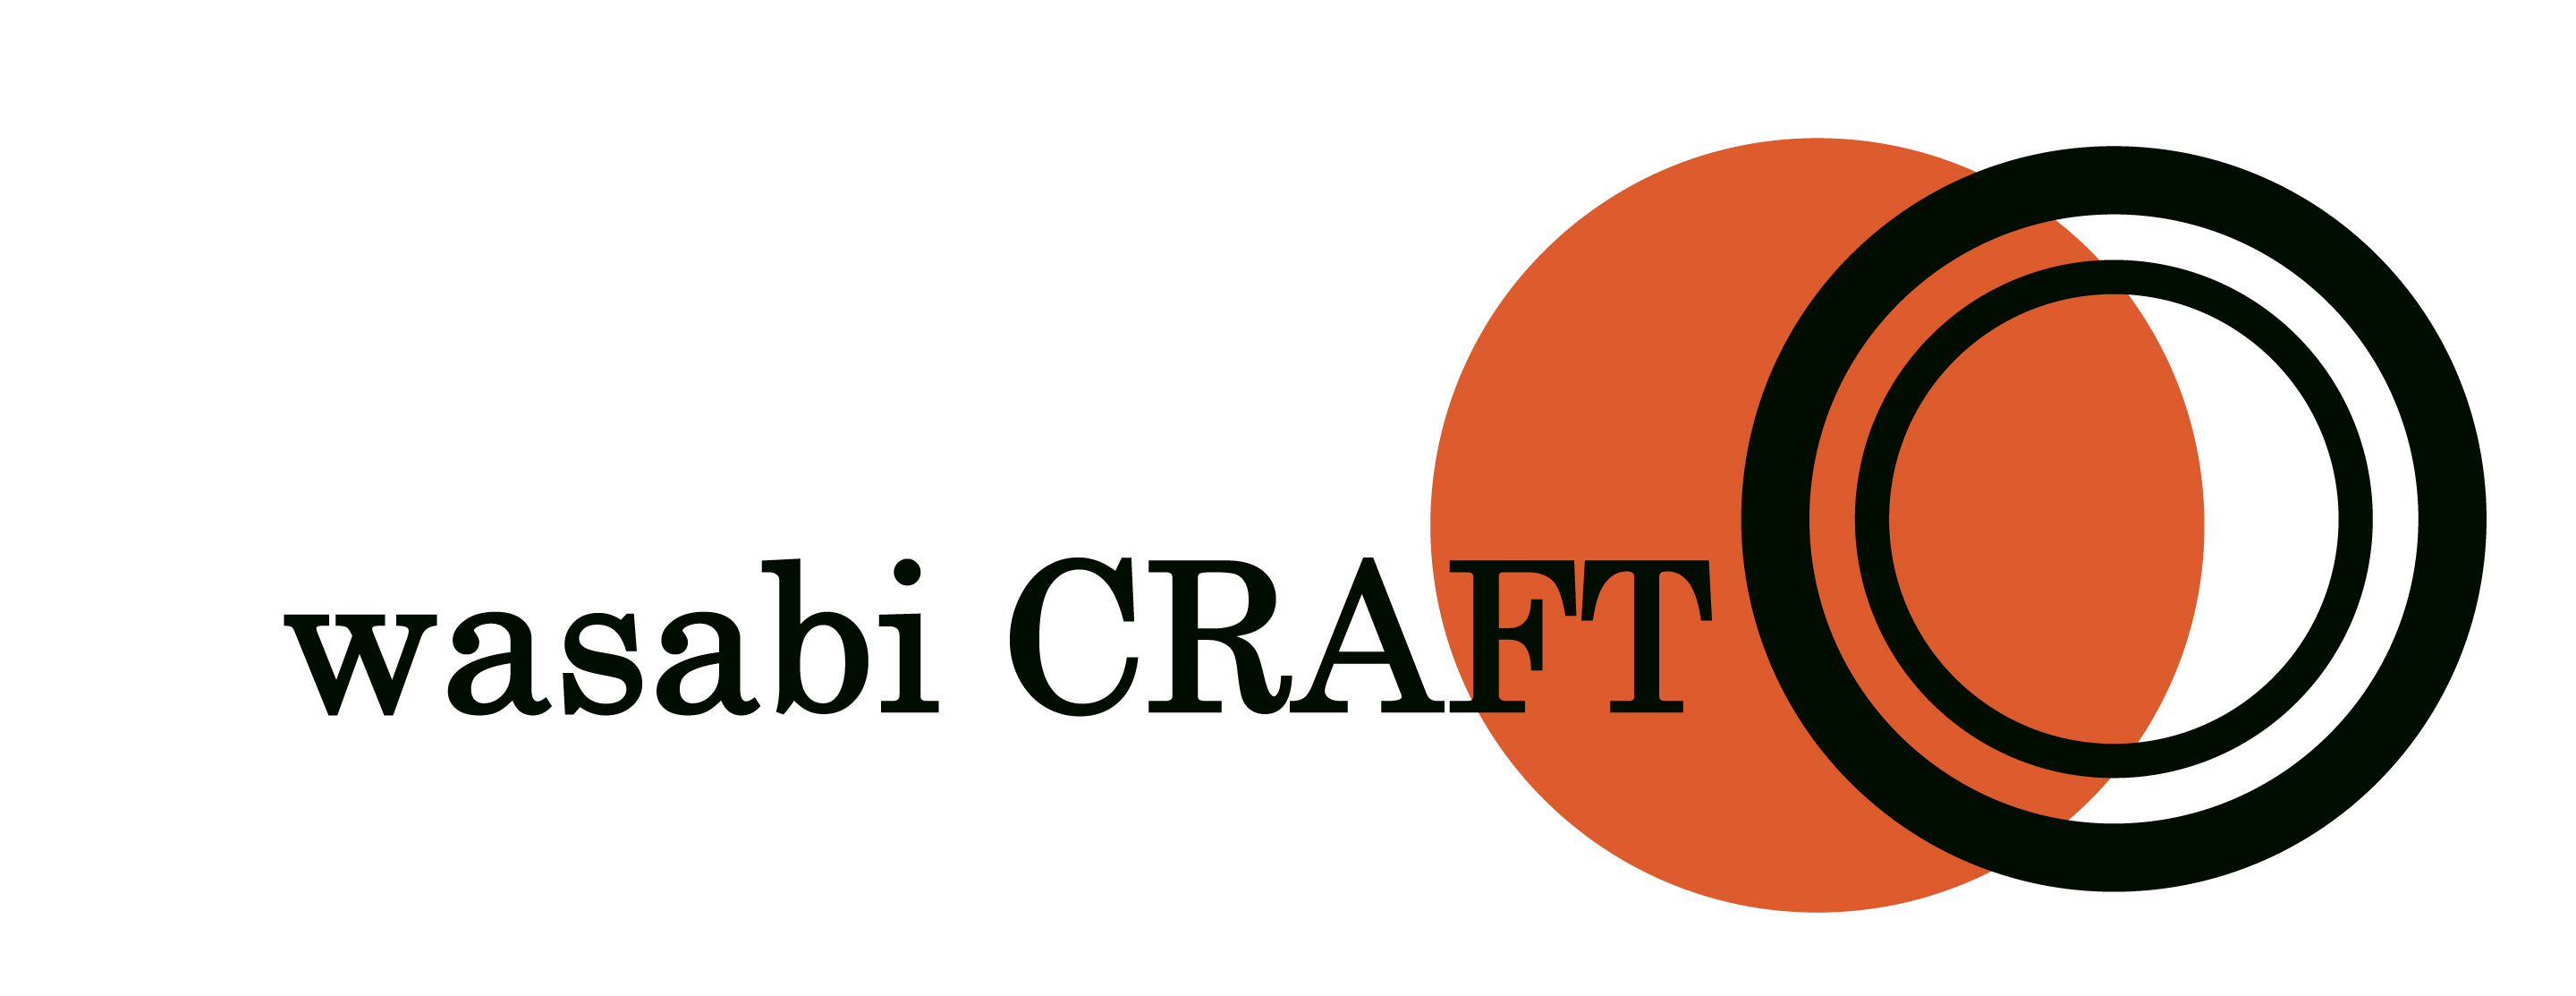 wasabi CRAFT